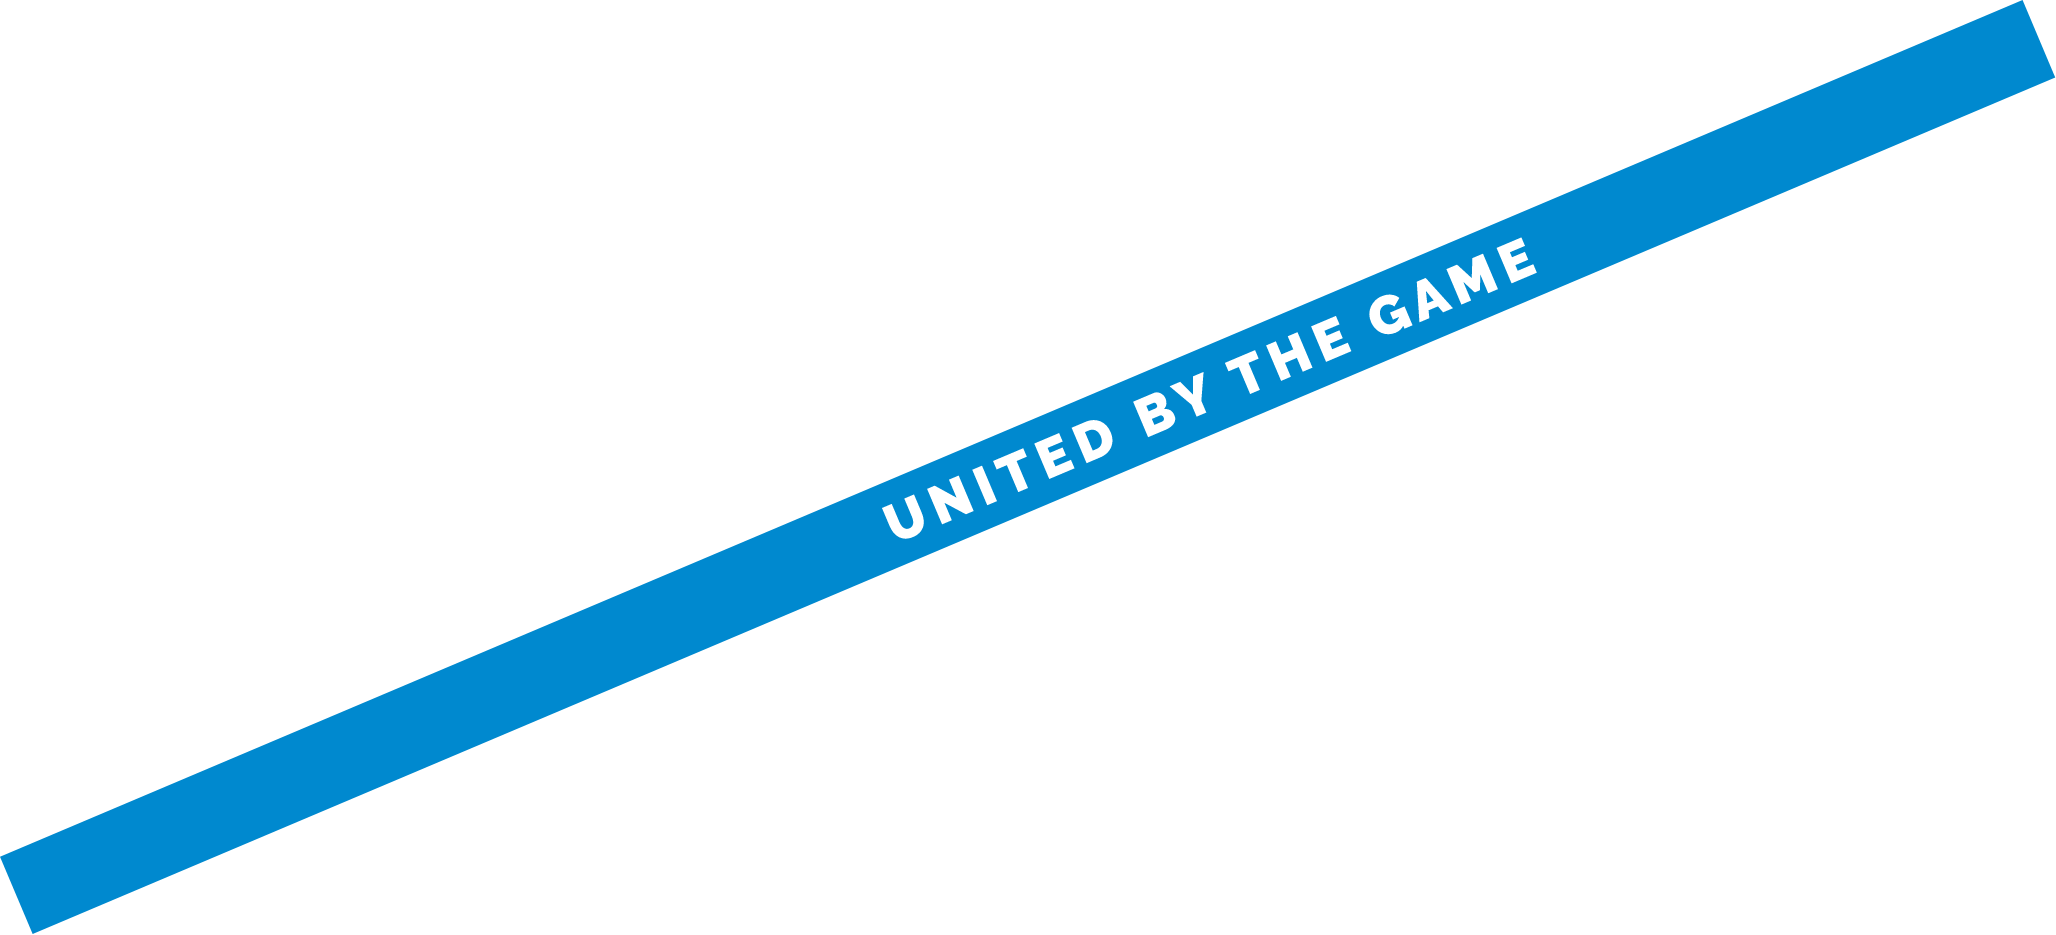 United by the Game